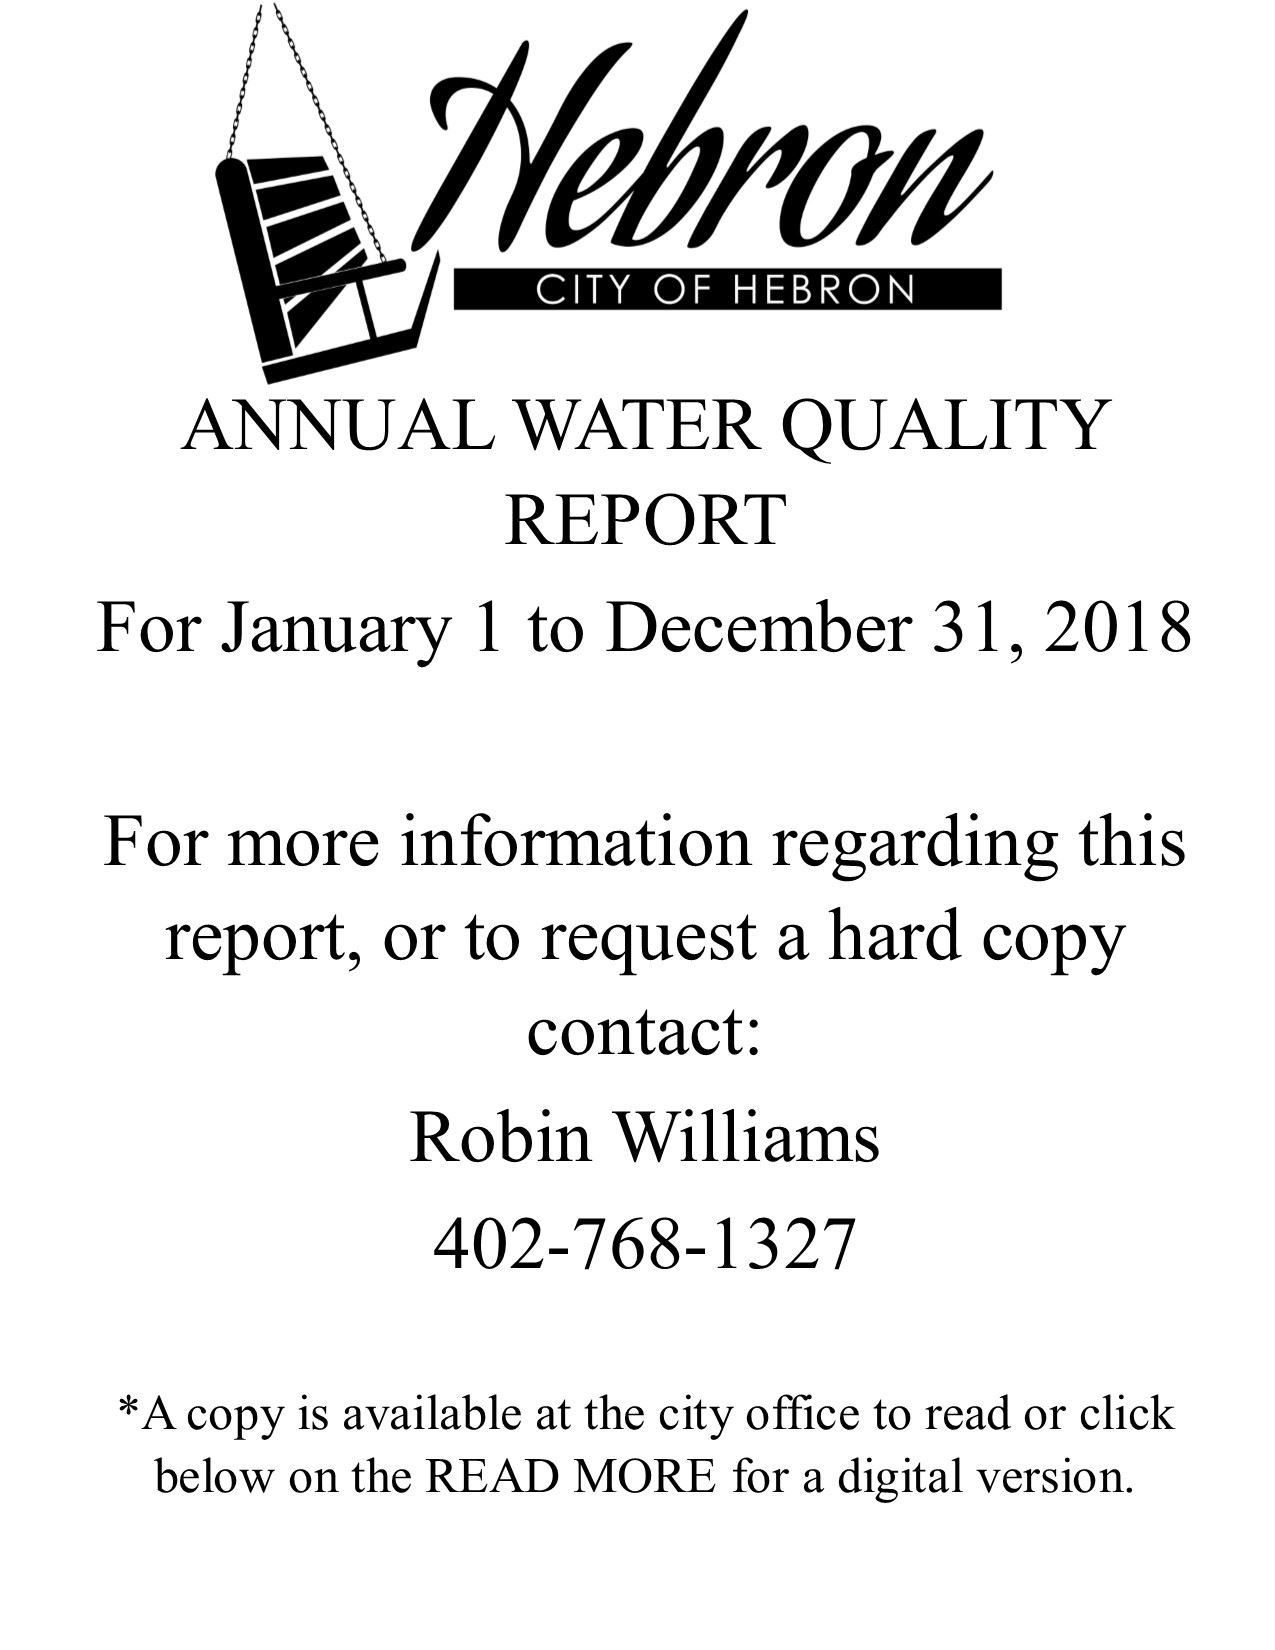 WATER REPORT 2018 WEBSITE